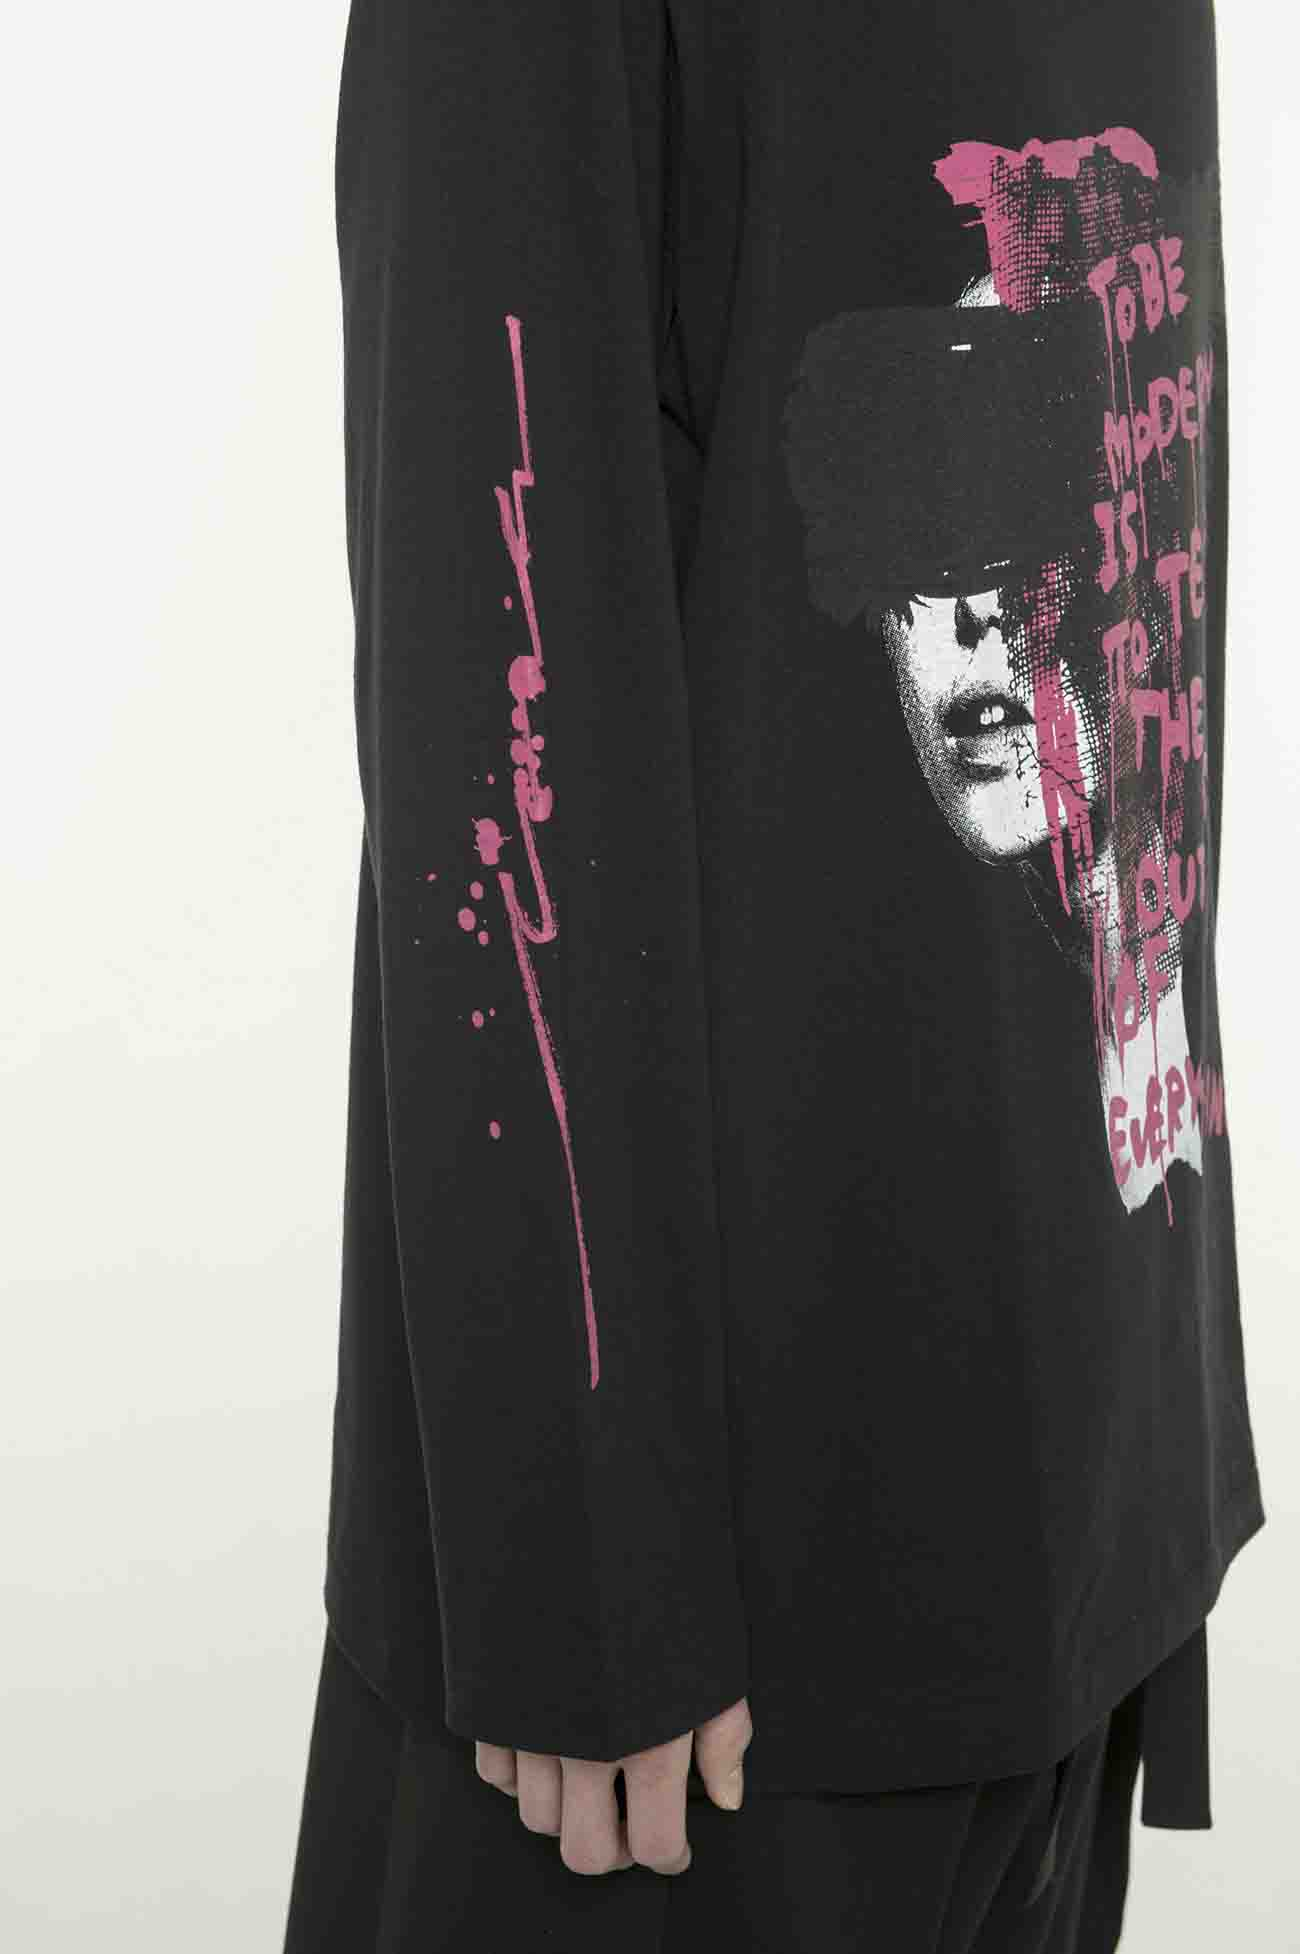 20/CottonJersey Tears of Pink Long Sleeve T-shirt